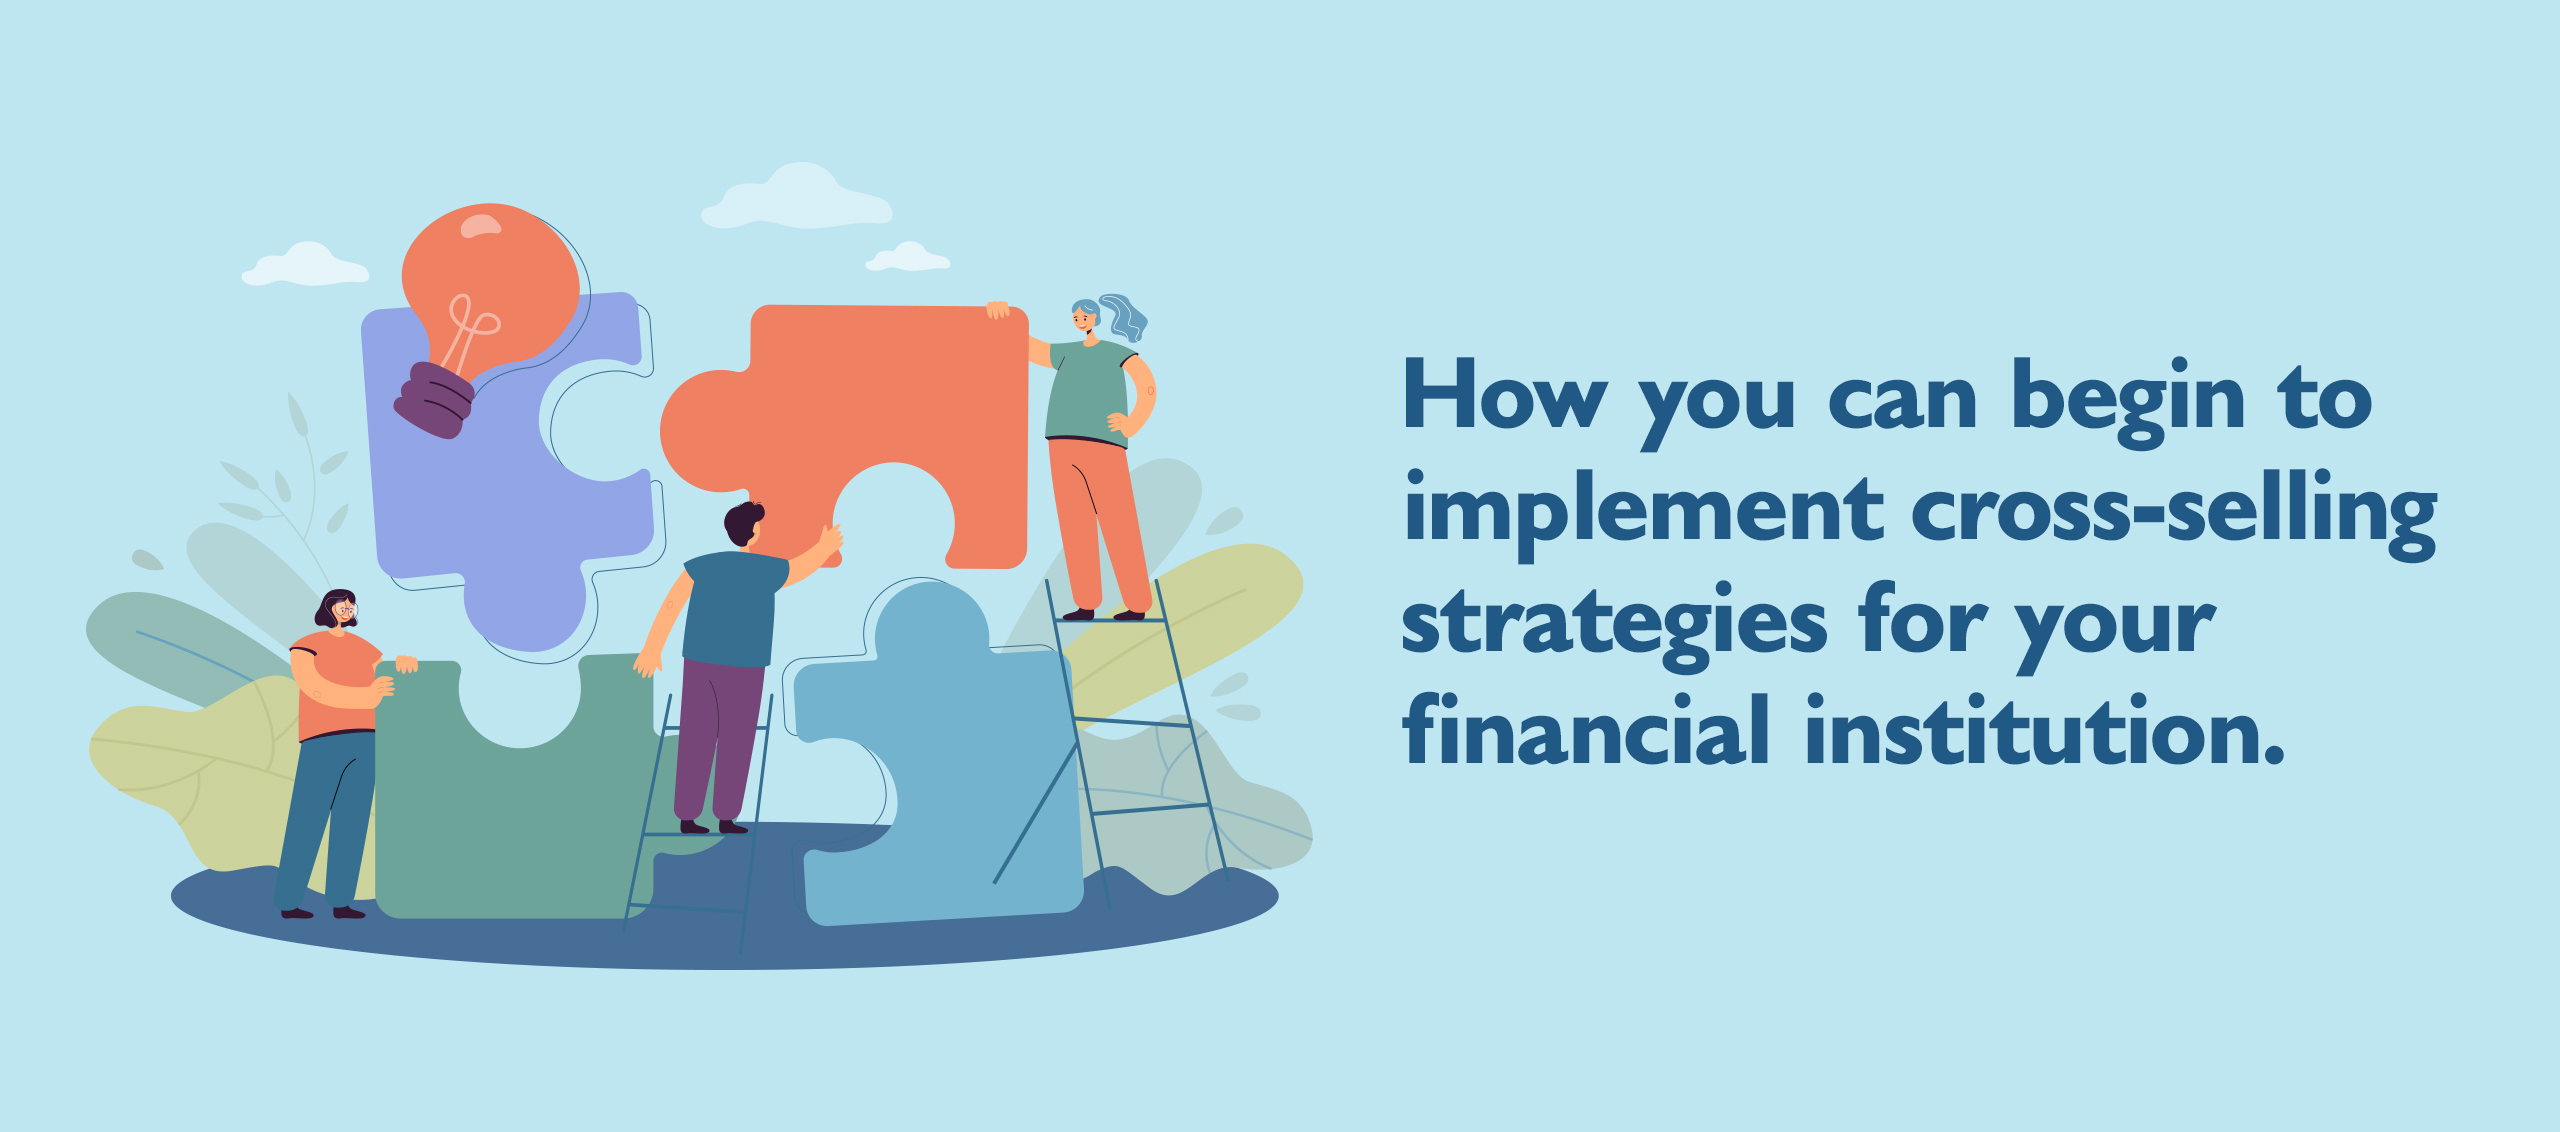 How you can begin to implement cross-selling strategies for your financial institution.